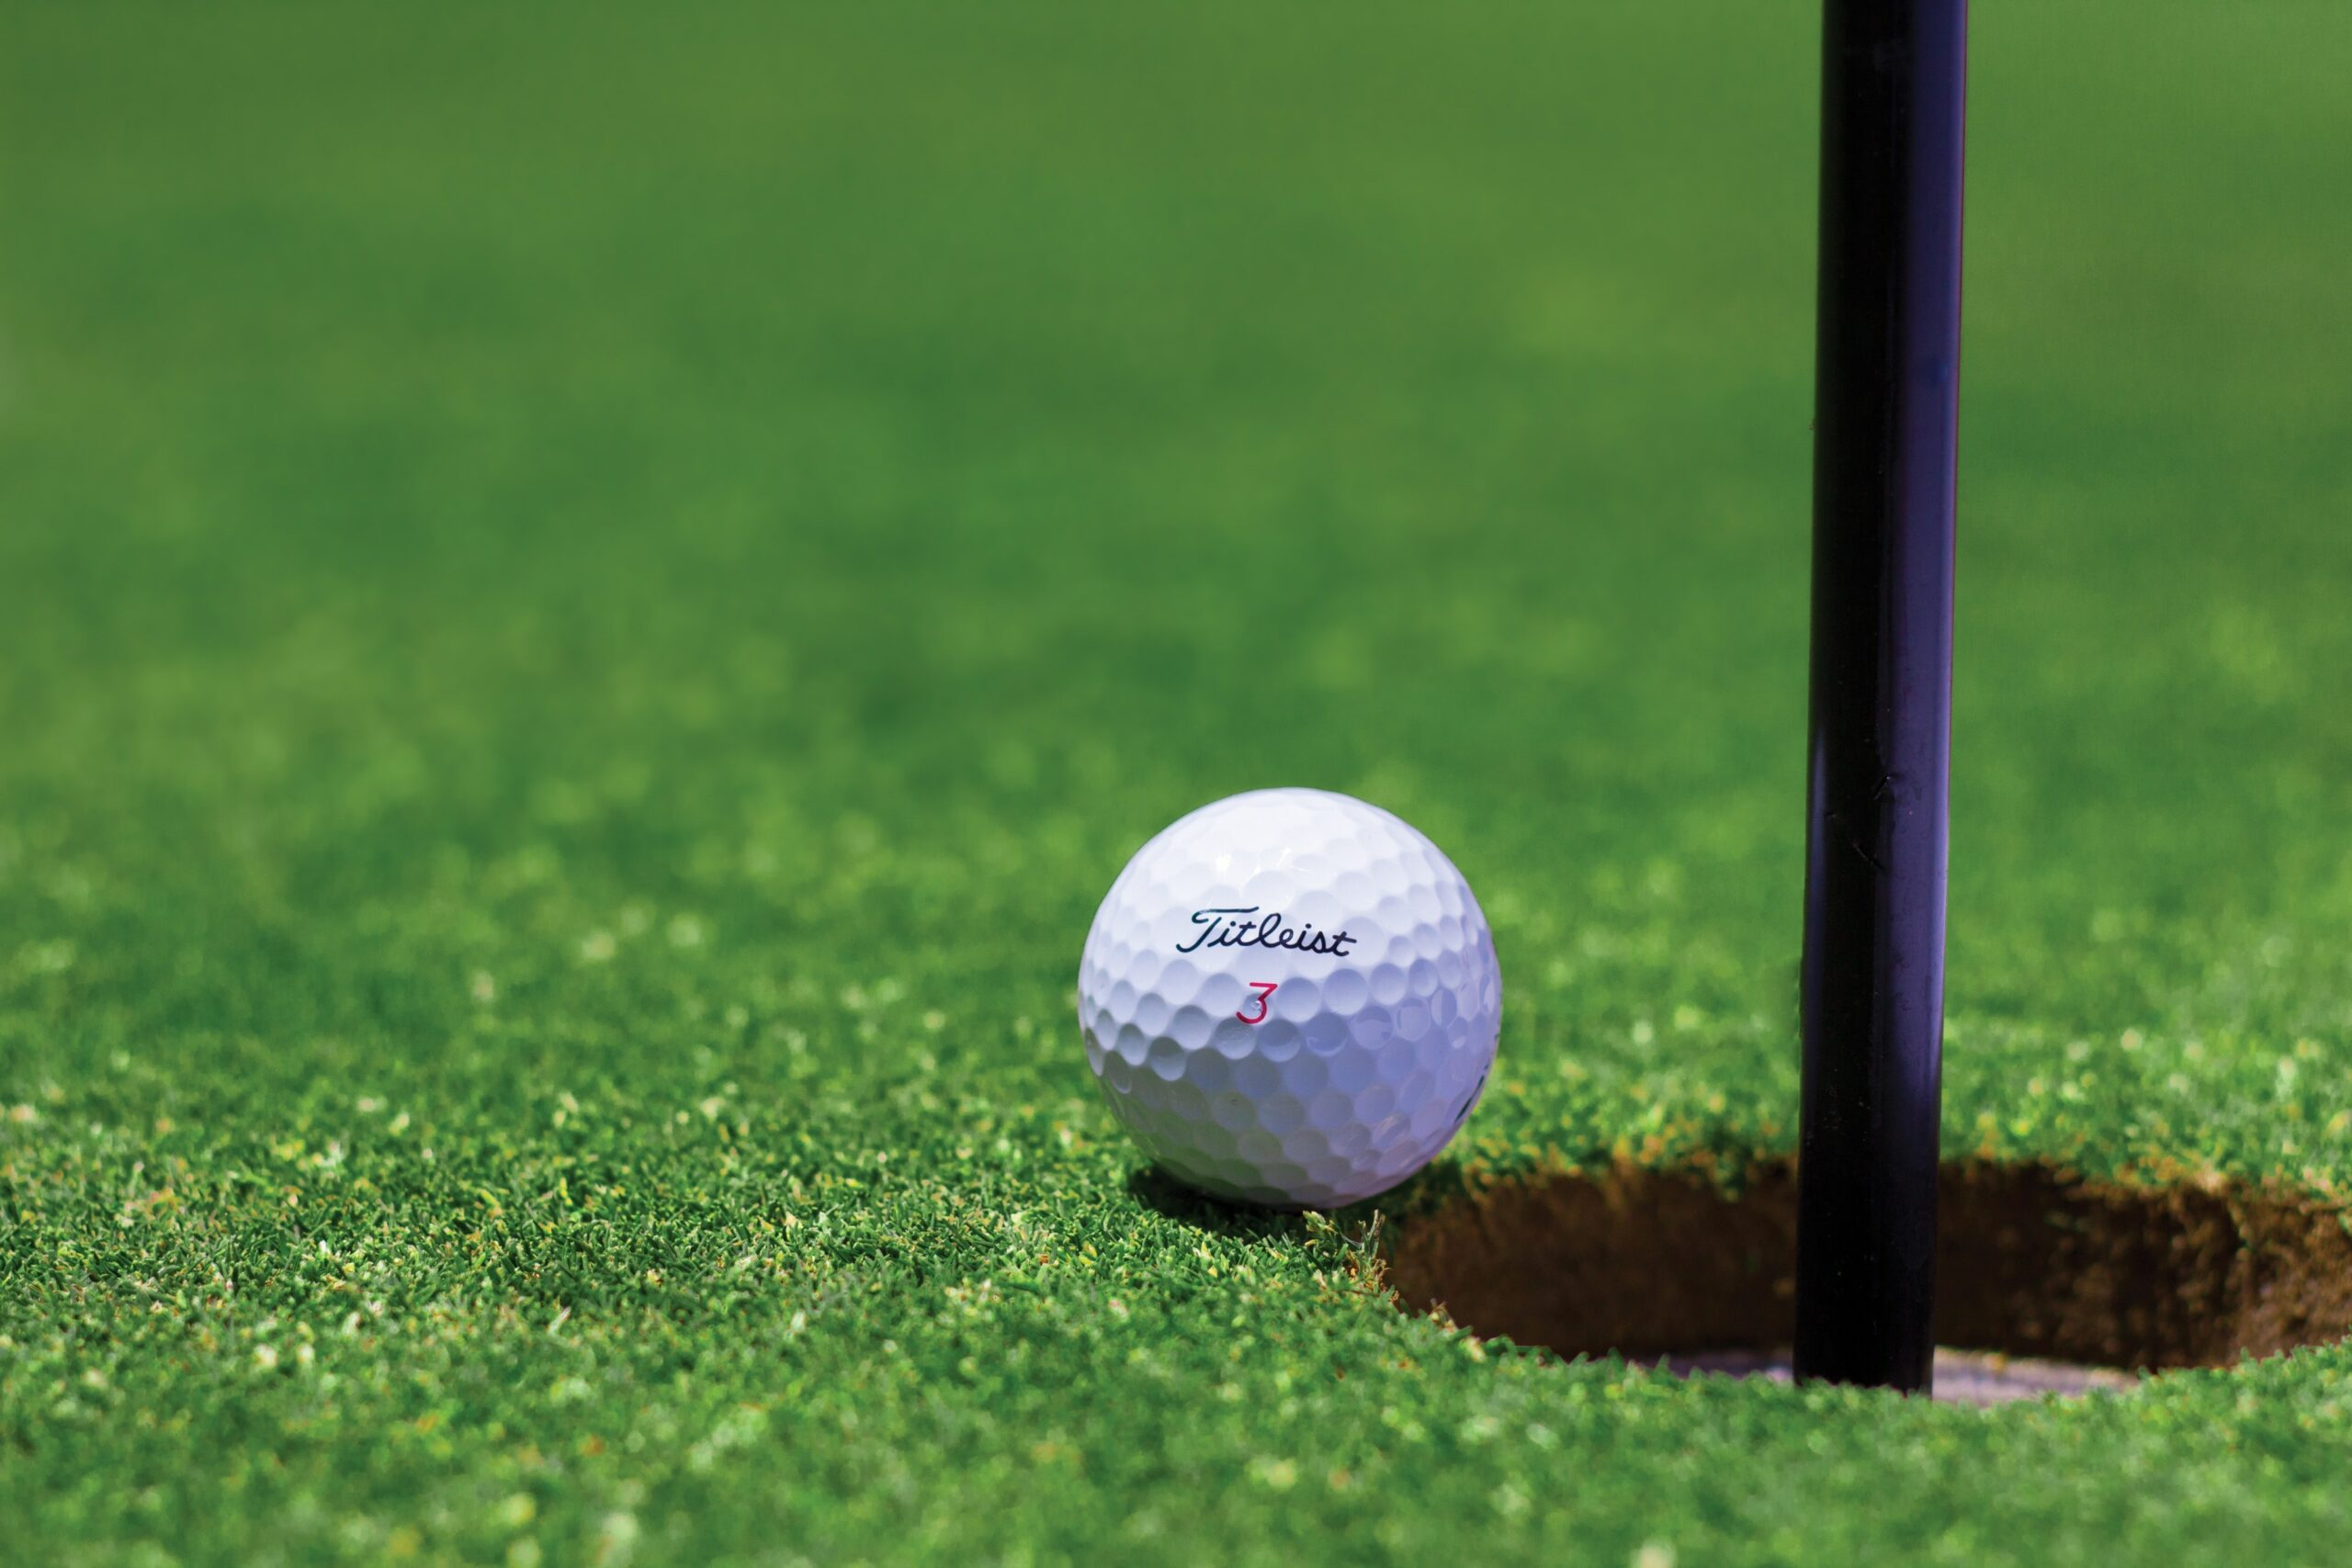 The Most-Viewed Hole-in-One On YouTube